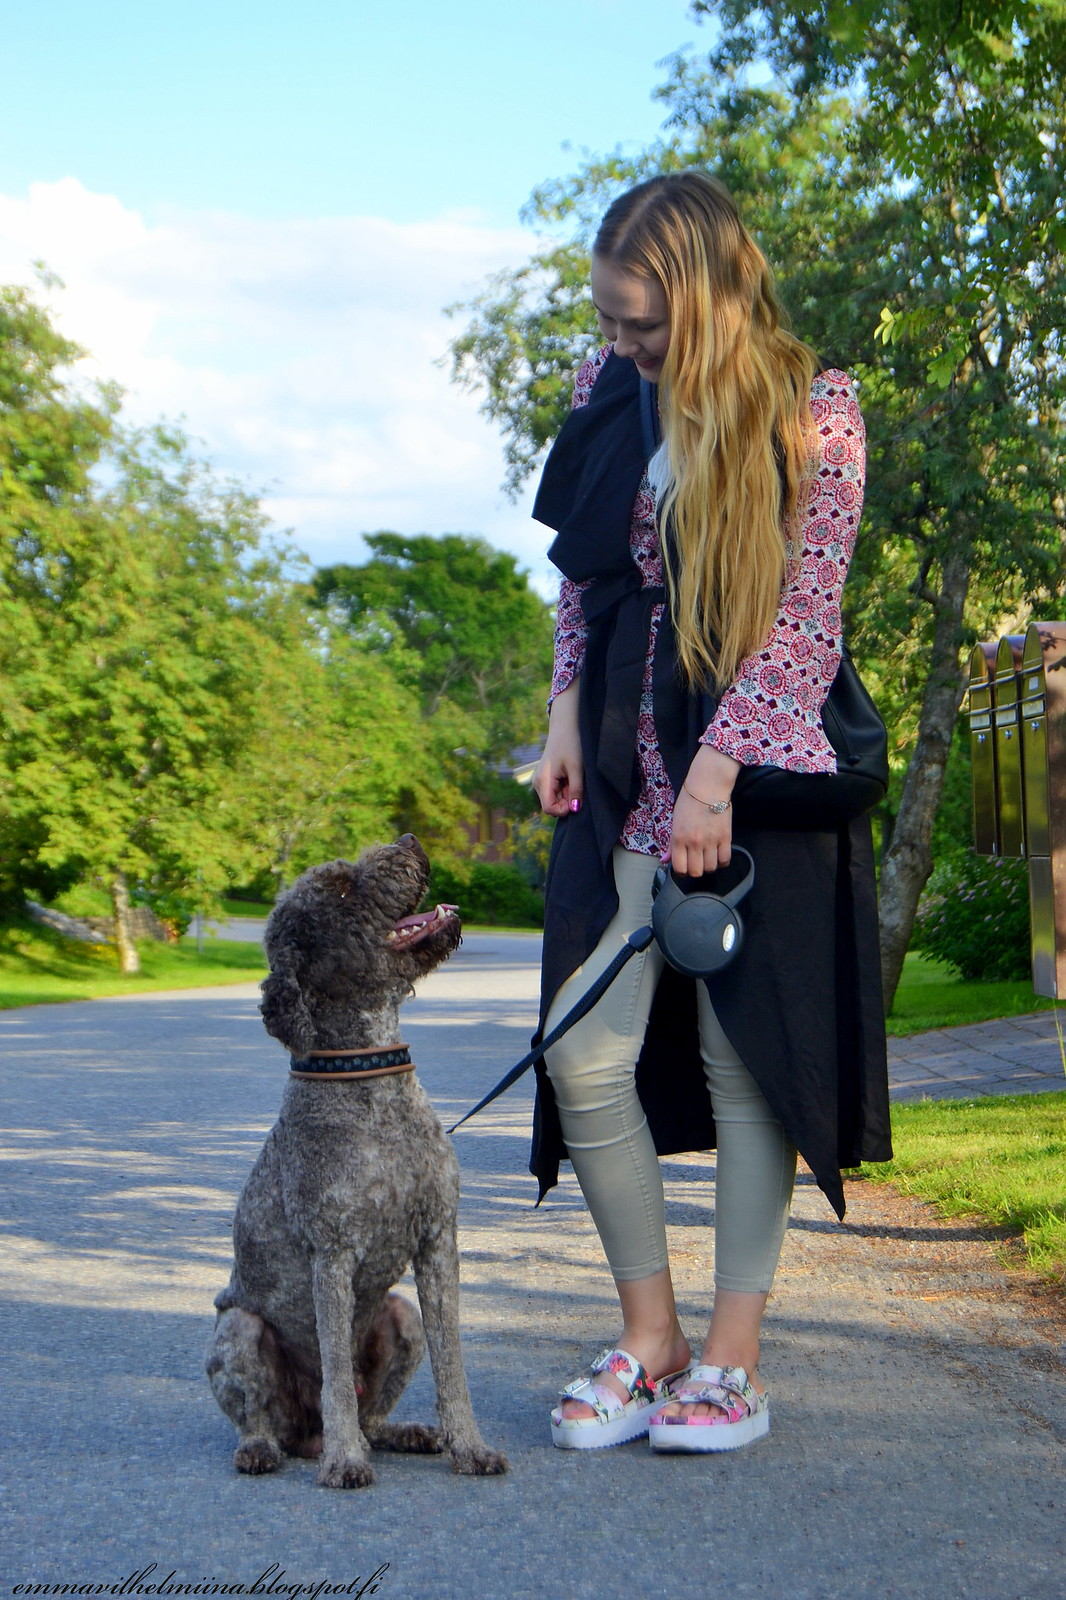 boho shirt outfit with dog